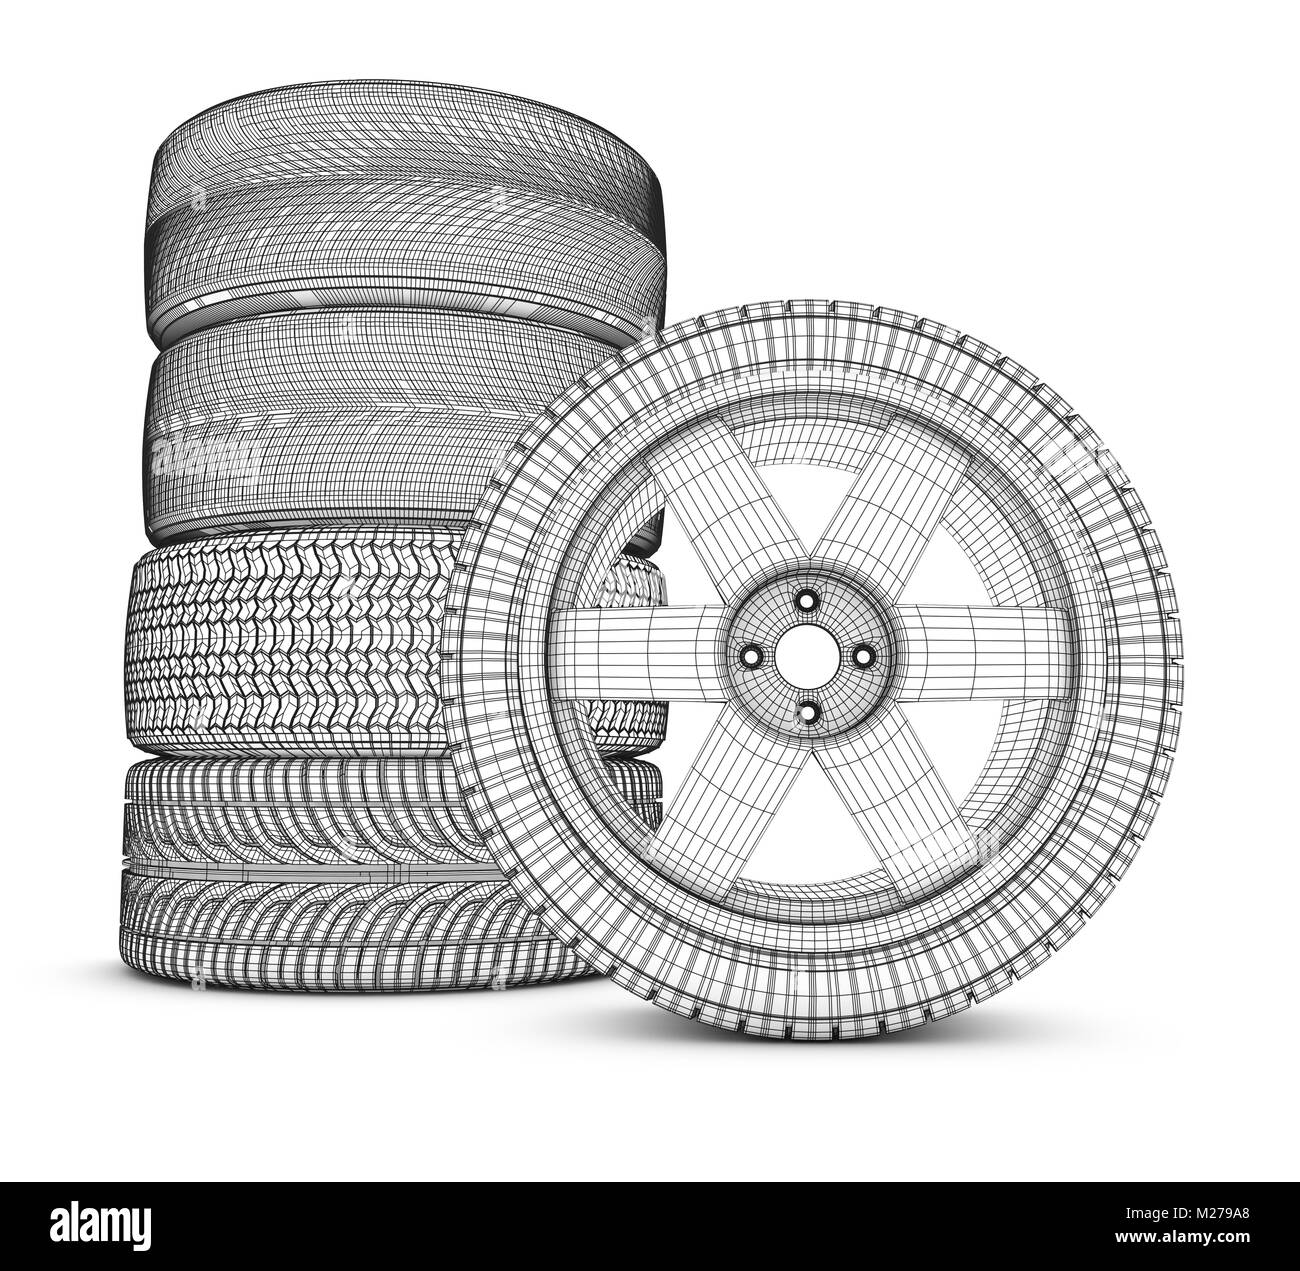 Wheels on a white background. 3d rendering. - Stock Image